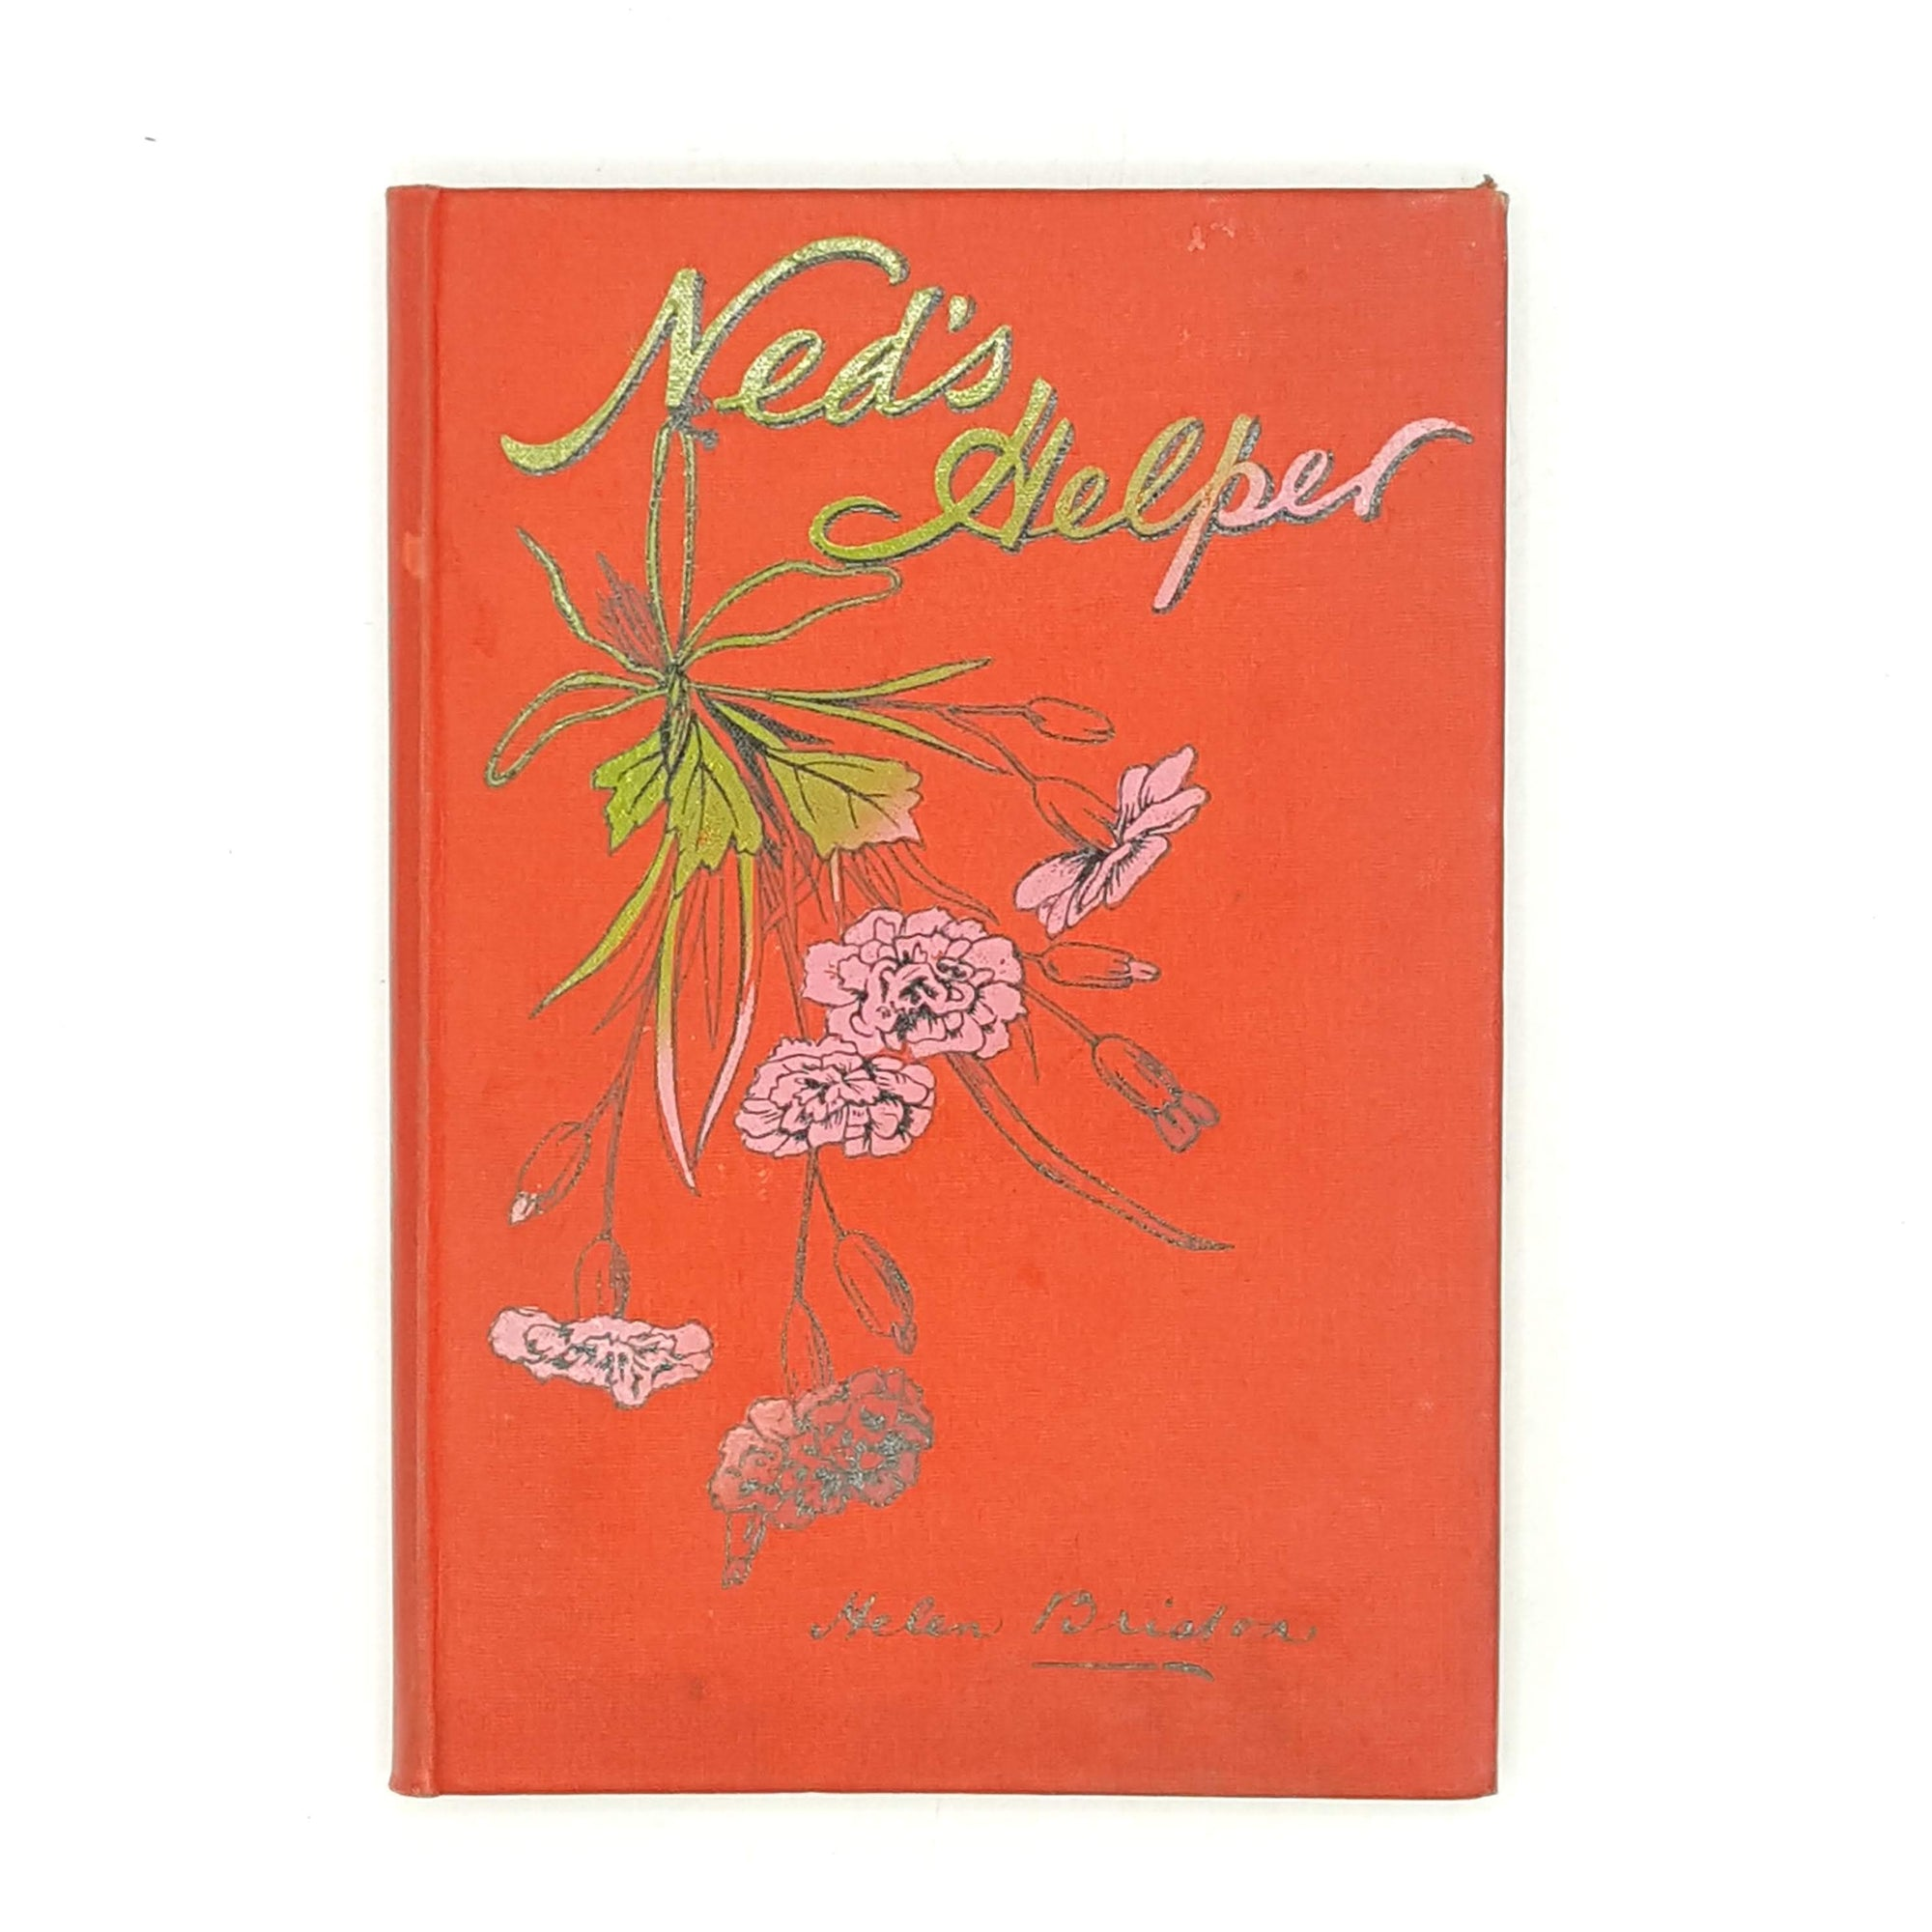 decorative-robert-culley-classic-vintage-neds-helper-plates-illustrated-old-red-helen-briston-antique-thrift-books-patterned-country-house-library-